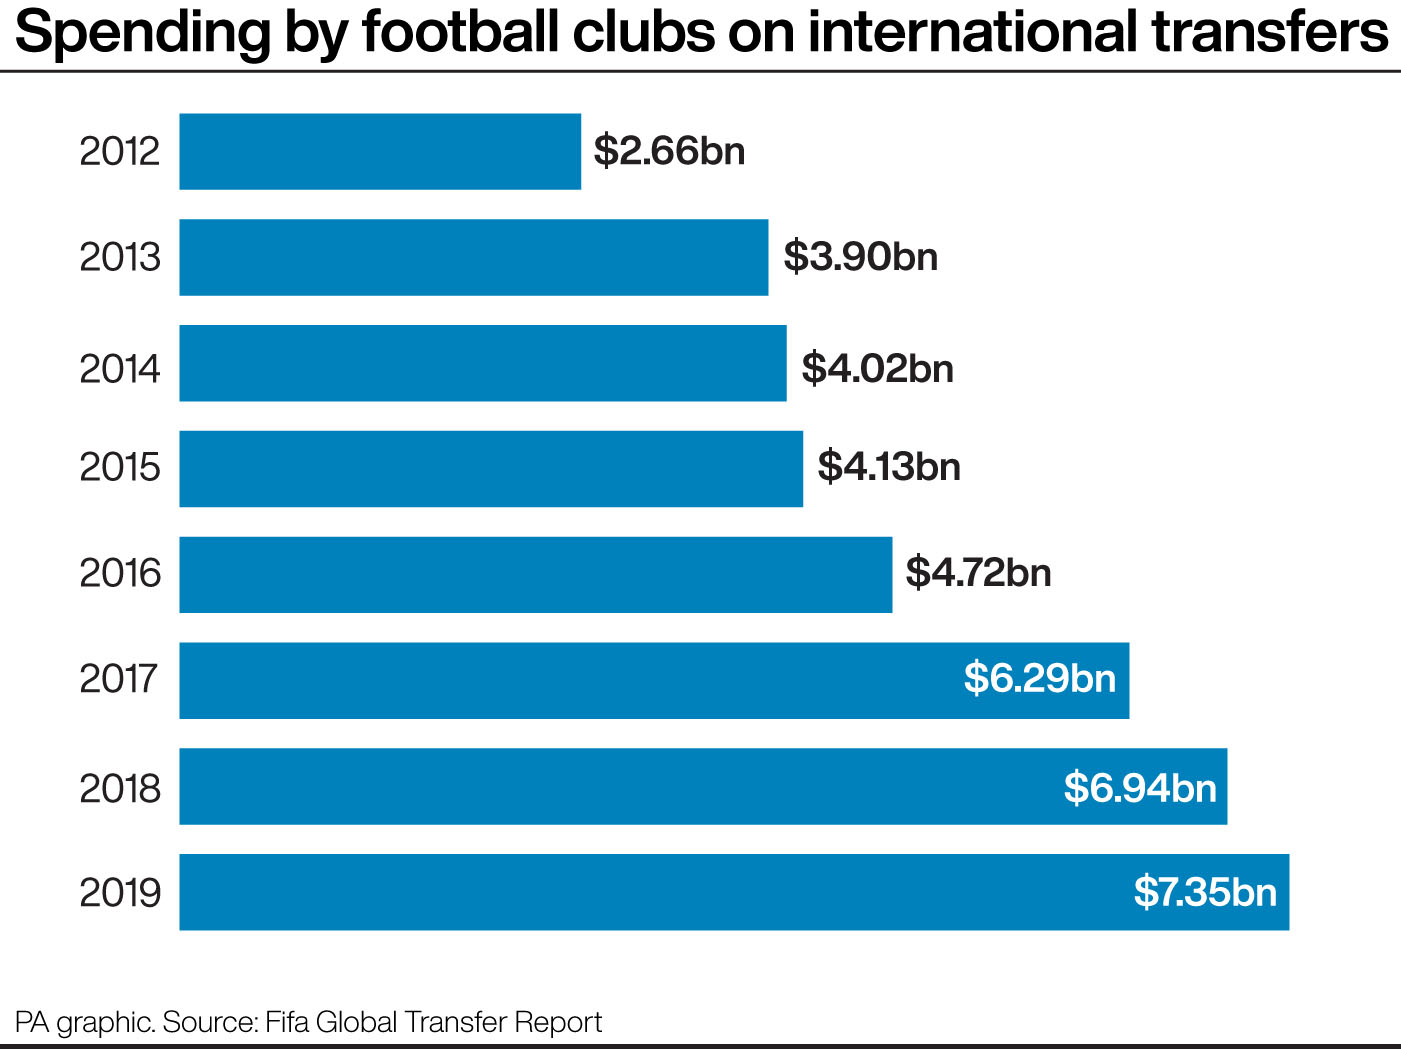 Worldwide spending on international transfers 2012-2019